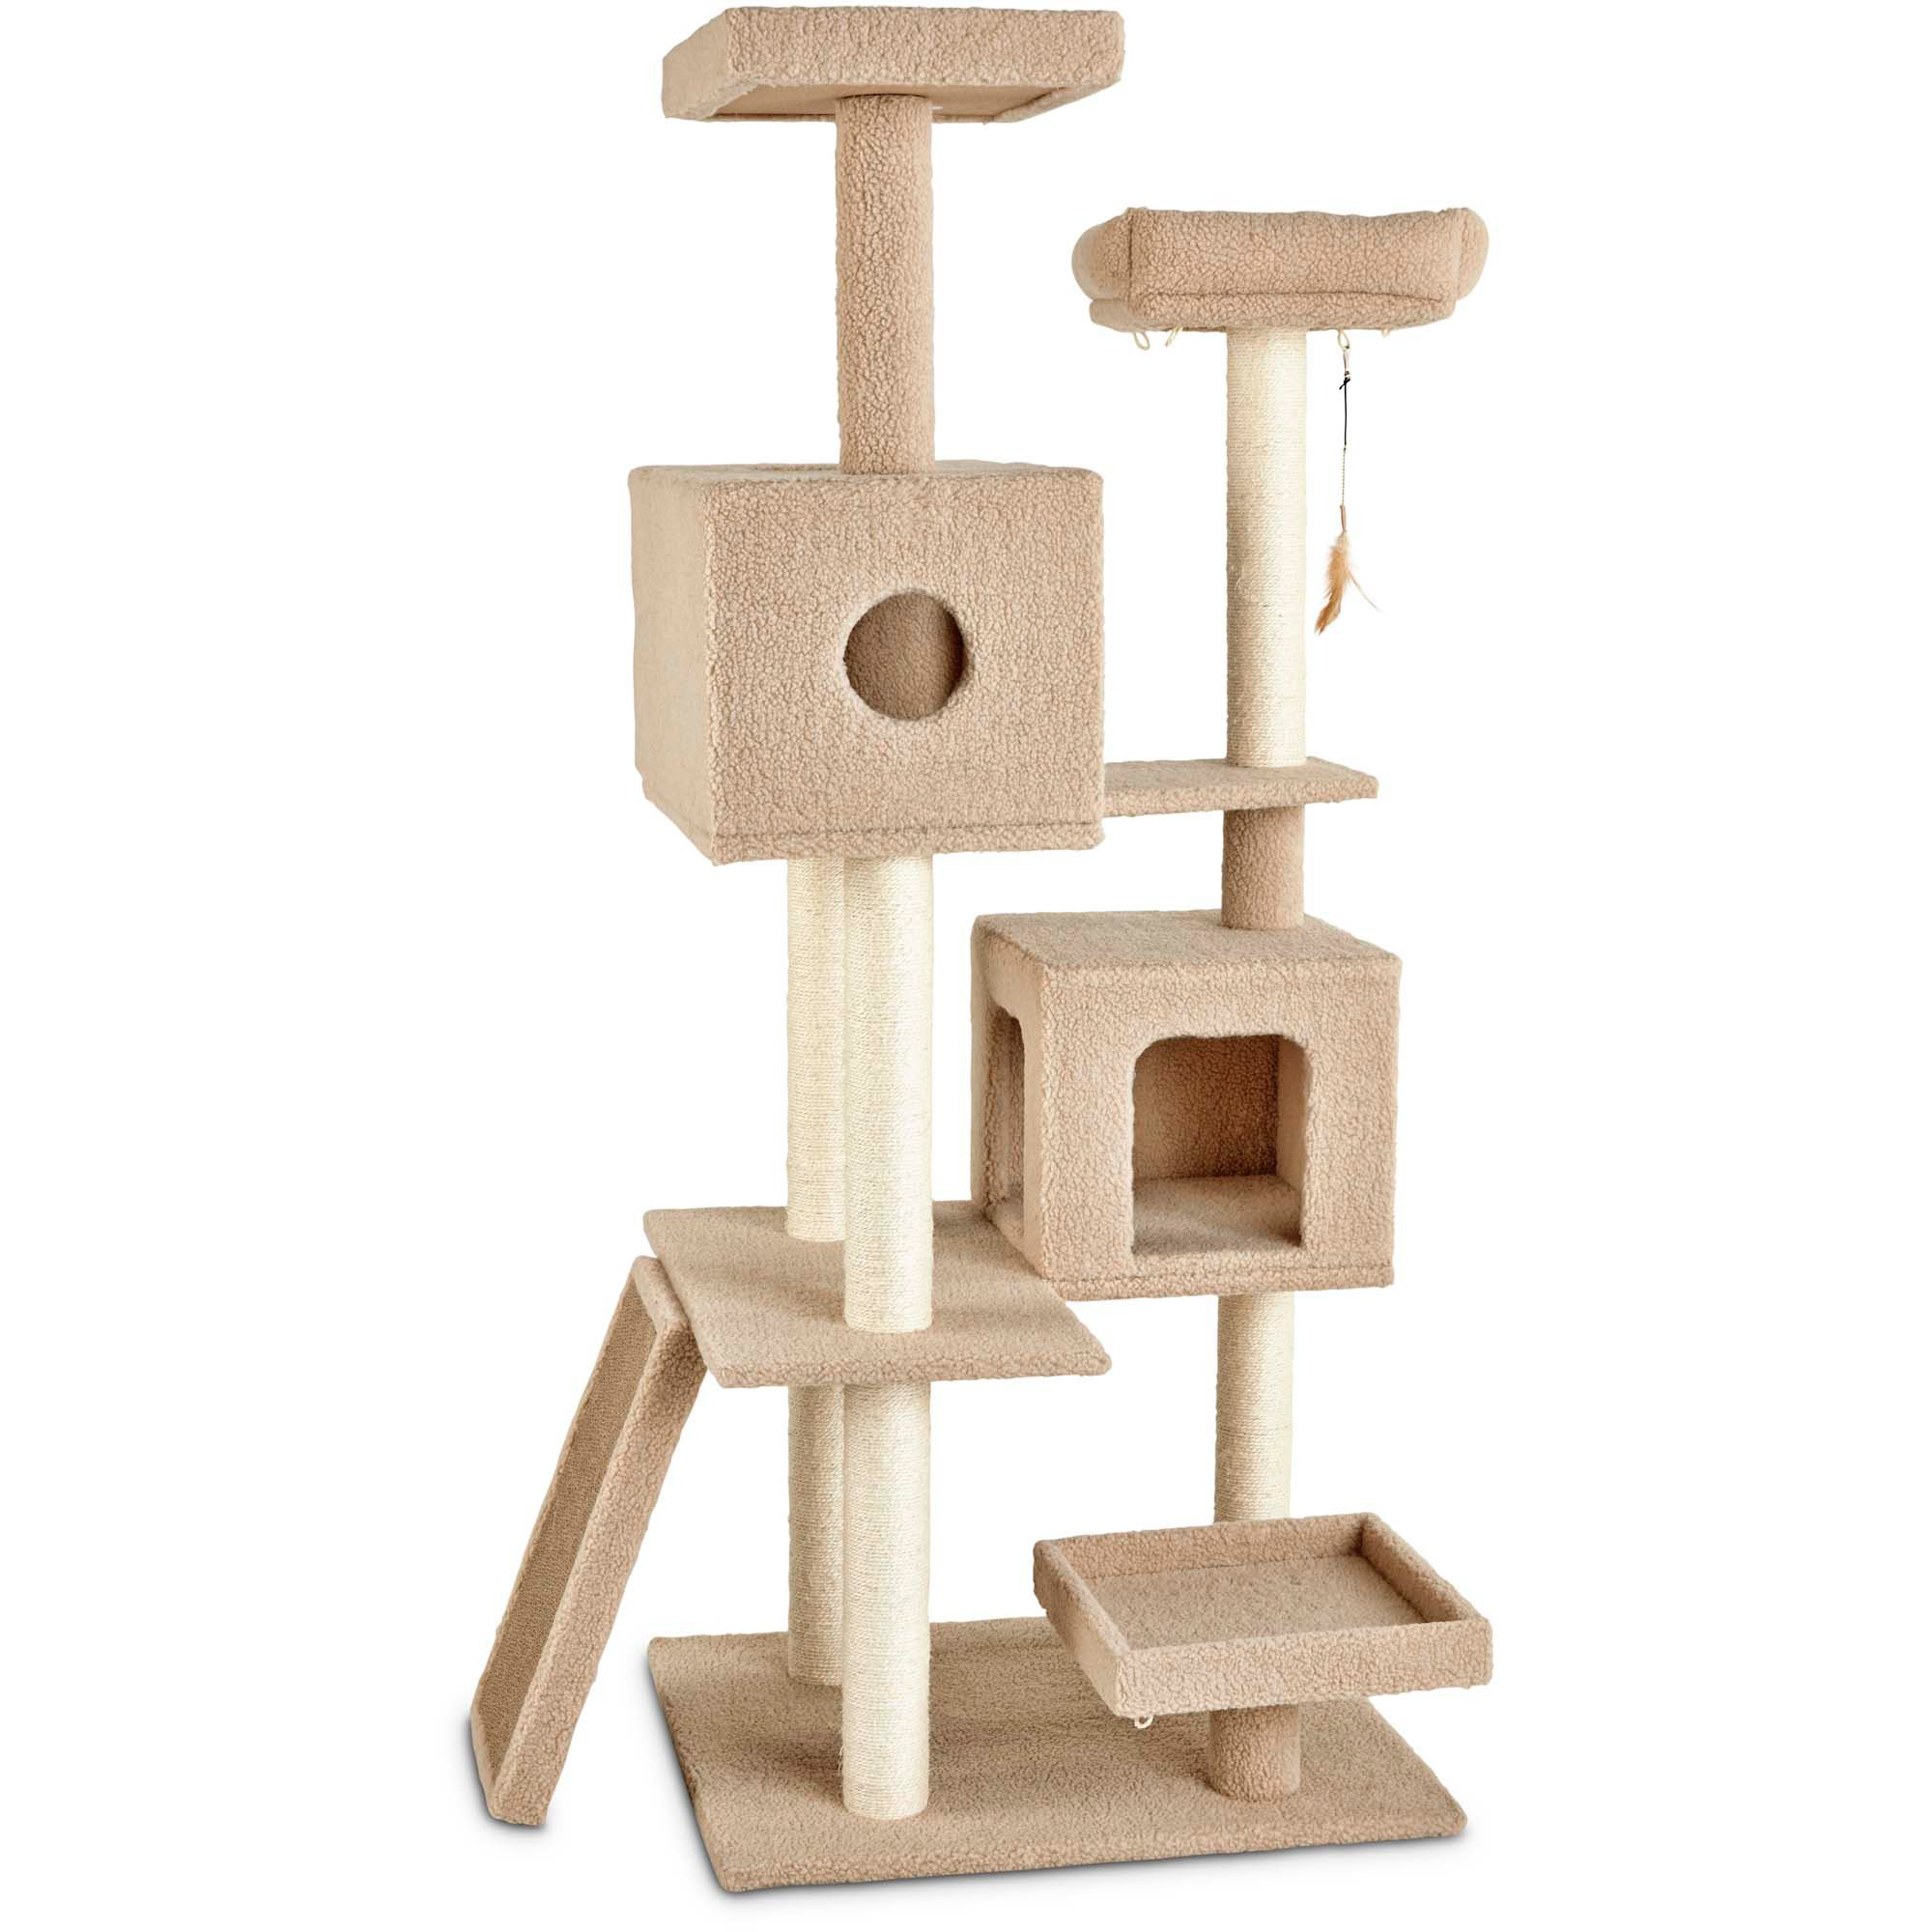 You me 7 level cat tree petco - Sofas para gatos ...